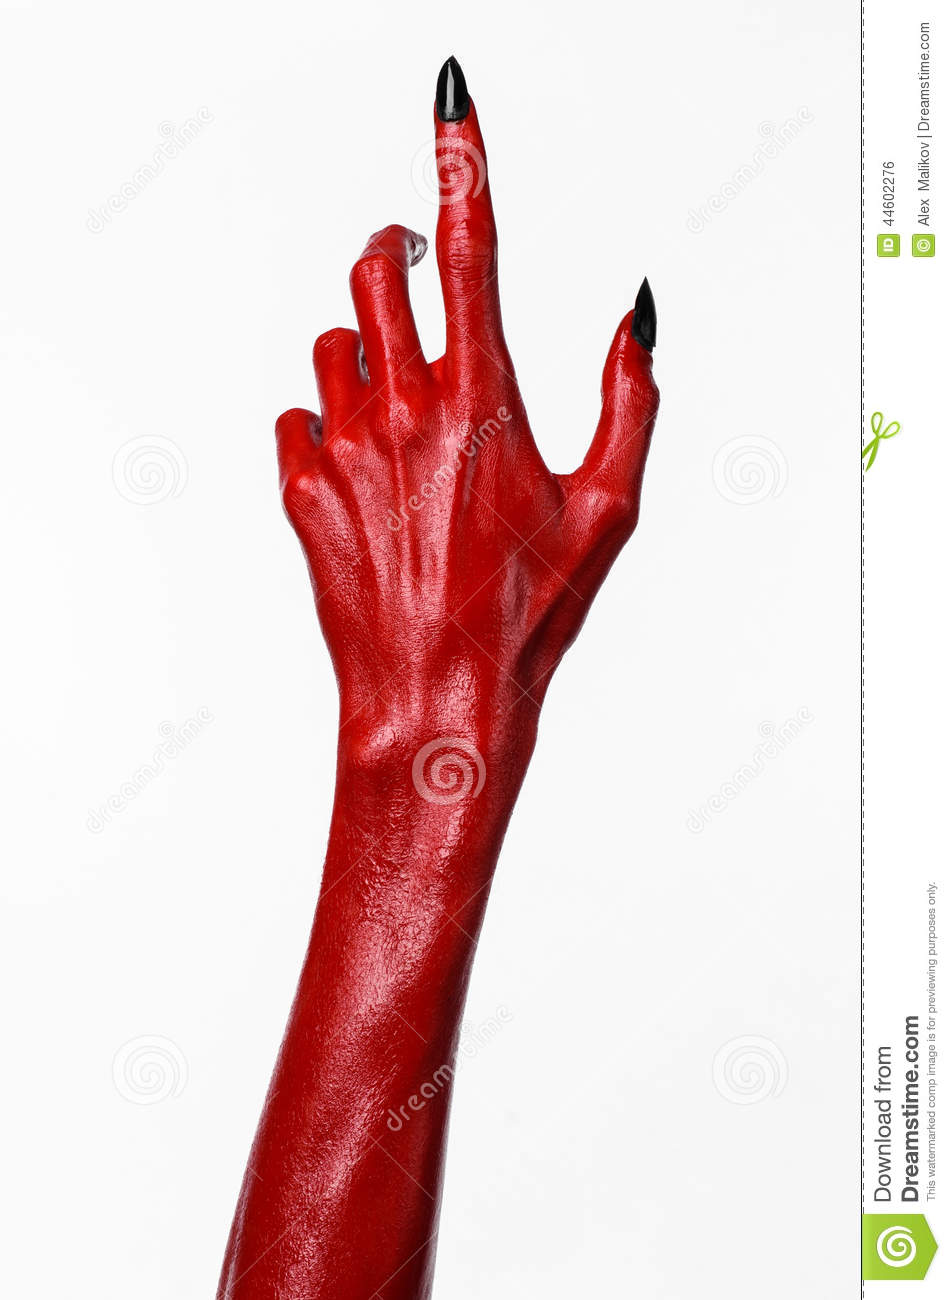 red devil u0026 39 s hands with black nails  red hands of satan  halloween theme  on a white background